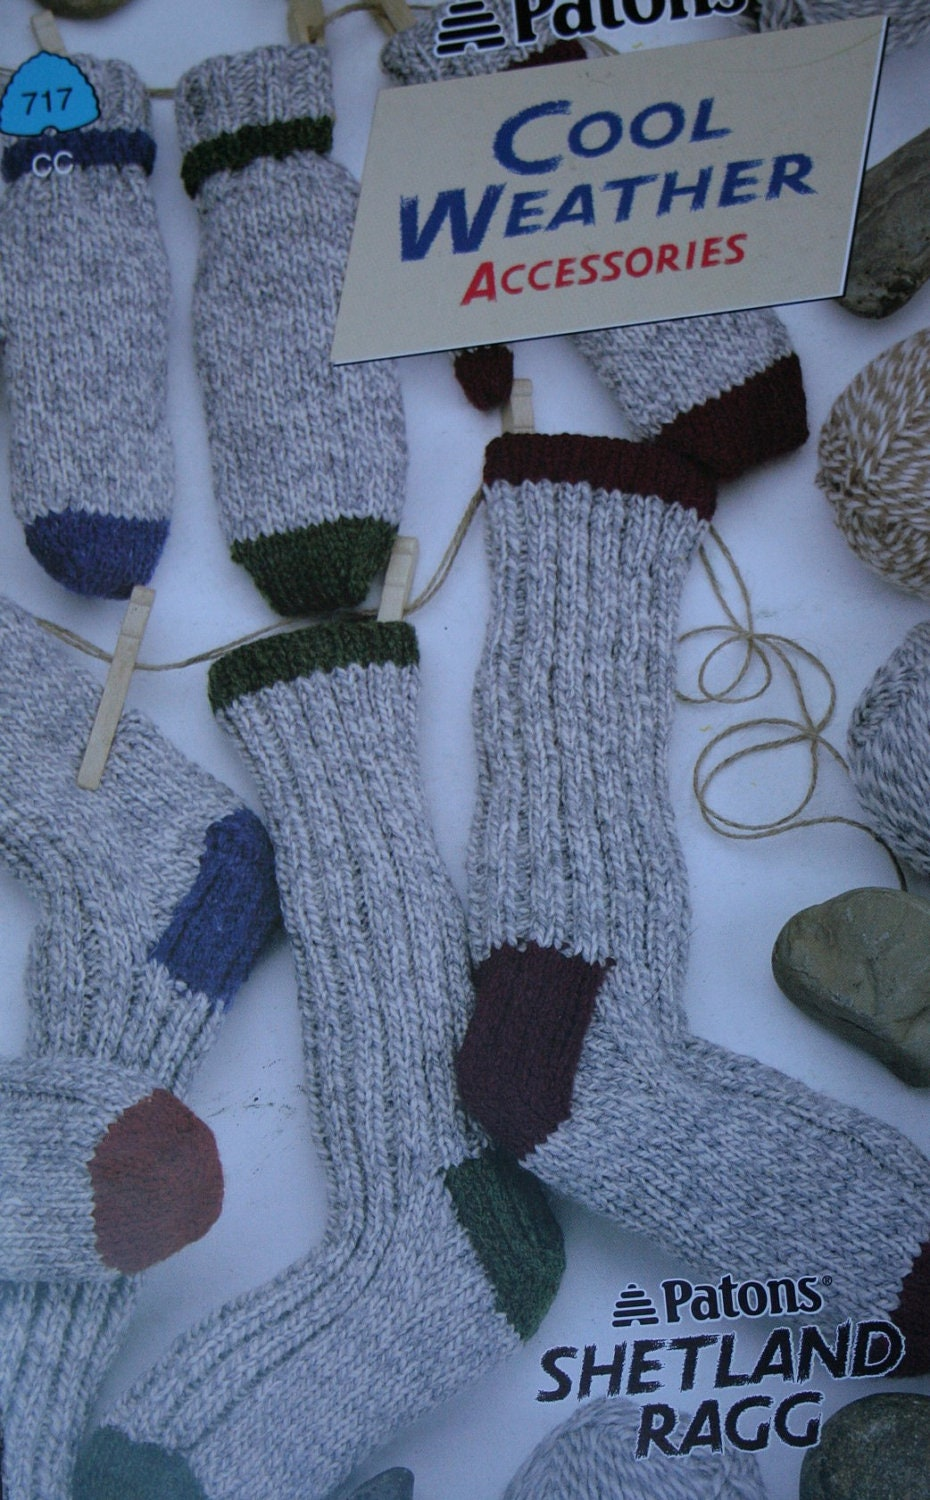 Knitting Patterns For Mittens And Hats : Knitting Patterns Socks Mittens Hats Scarves Vest Cool Weather